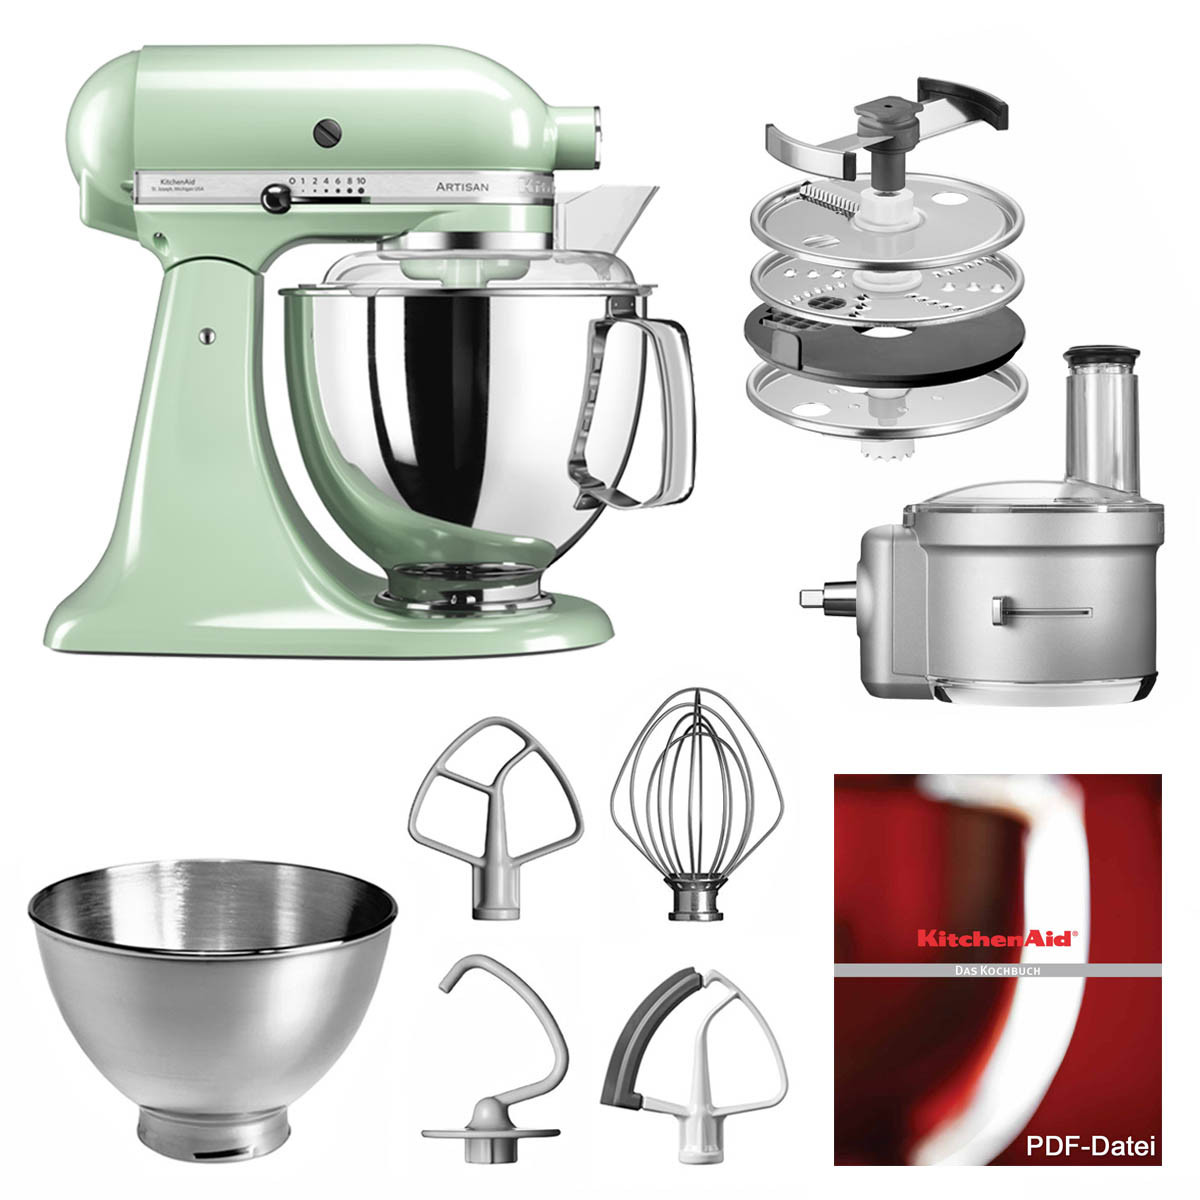 KitchenAid Küchenmaschine 175PS Foodprocessor Set pistazie